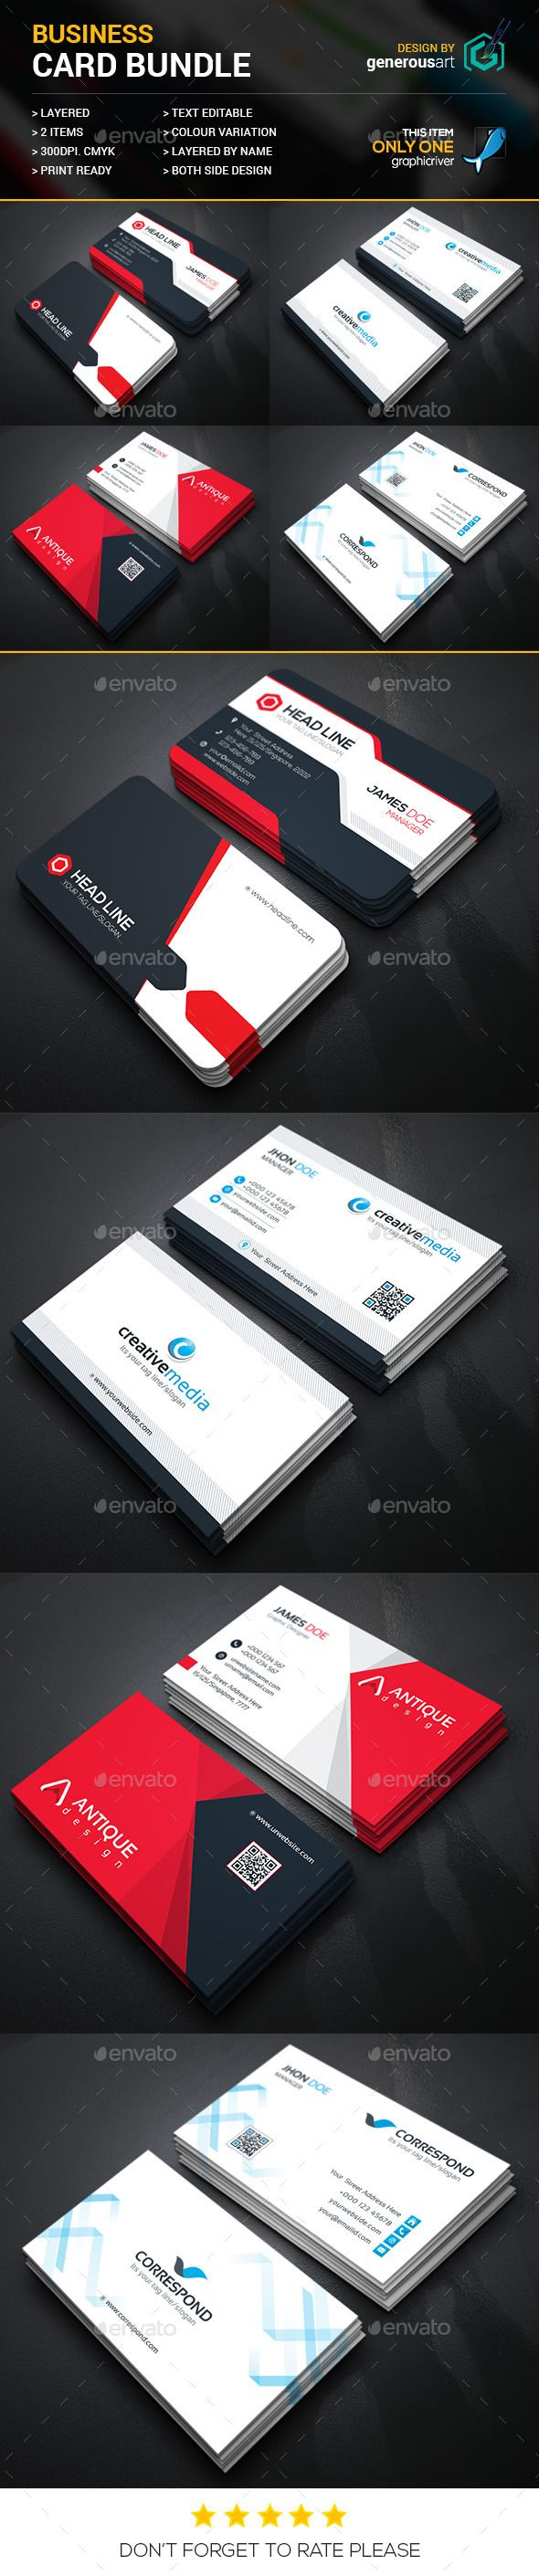 Business card bundle 4 in 1 corporate business card template business card bundle 4 in 1 corporate business card template vector eps accmission Images